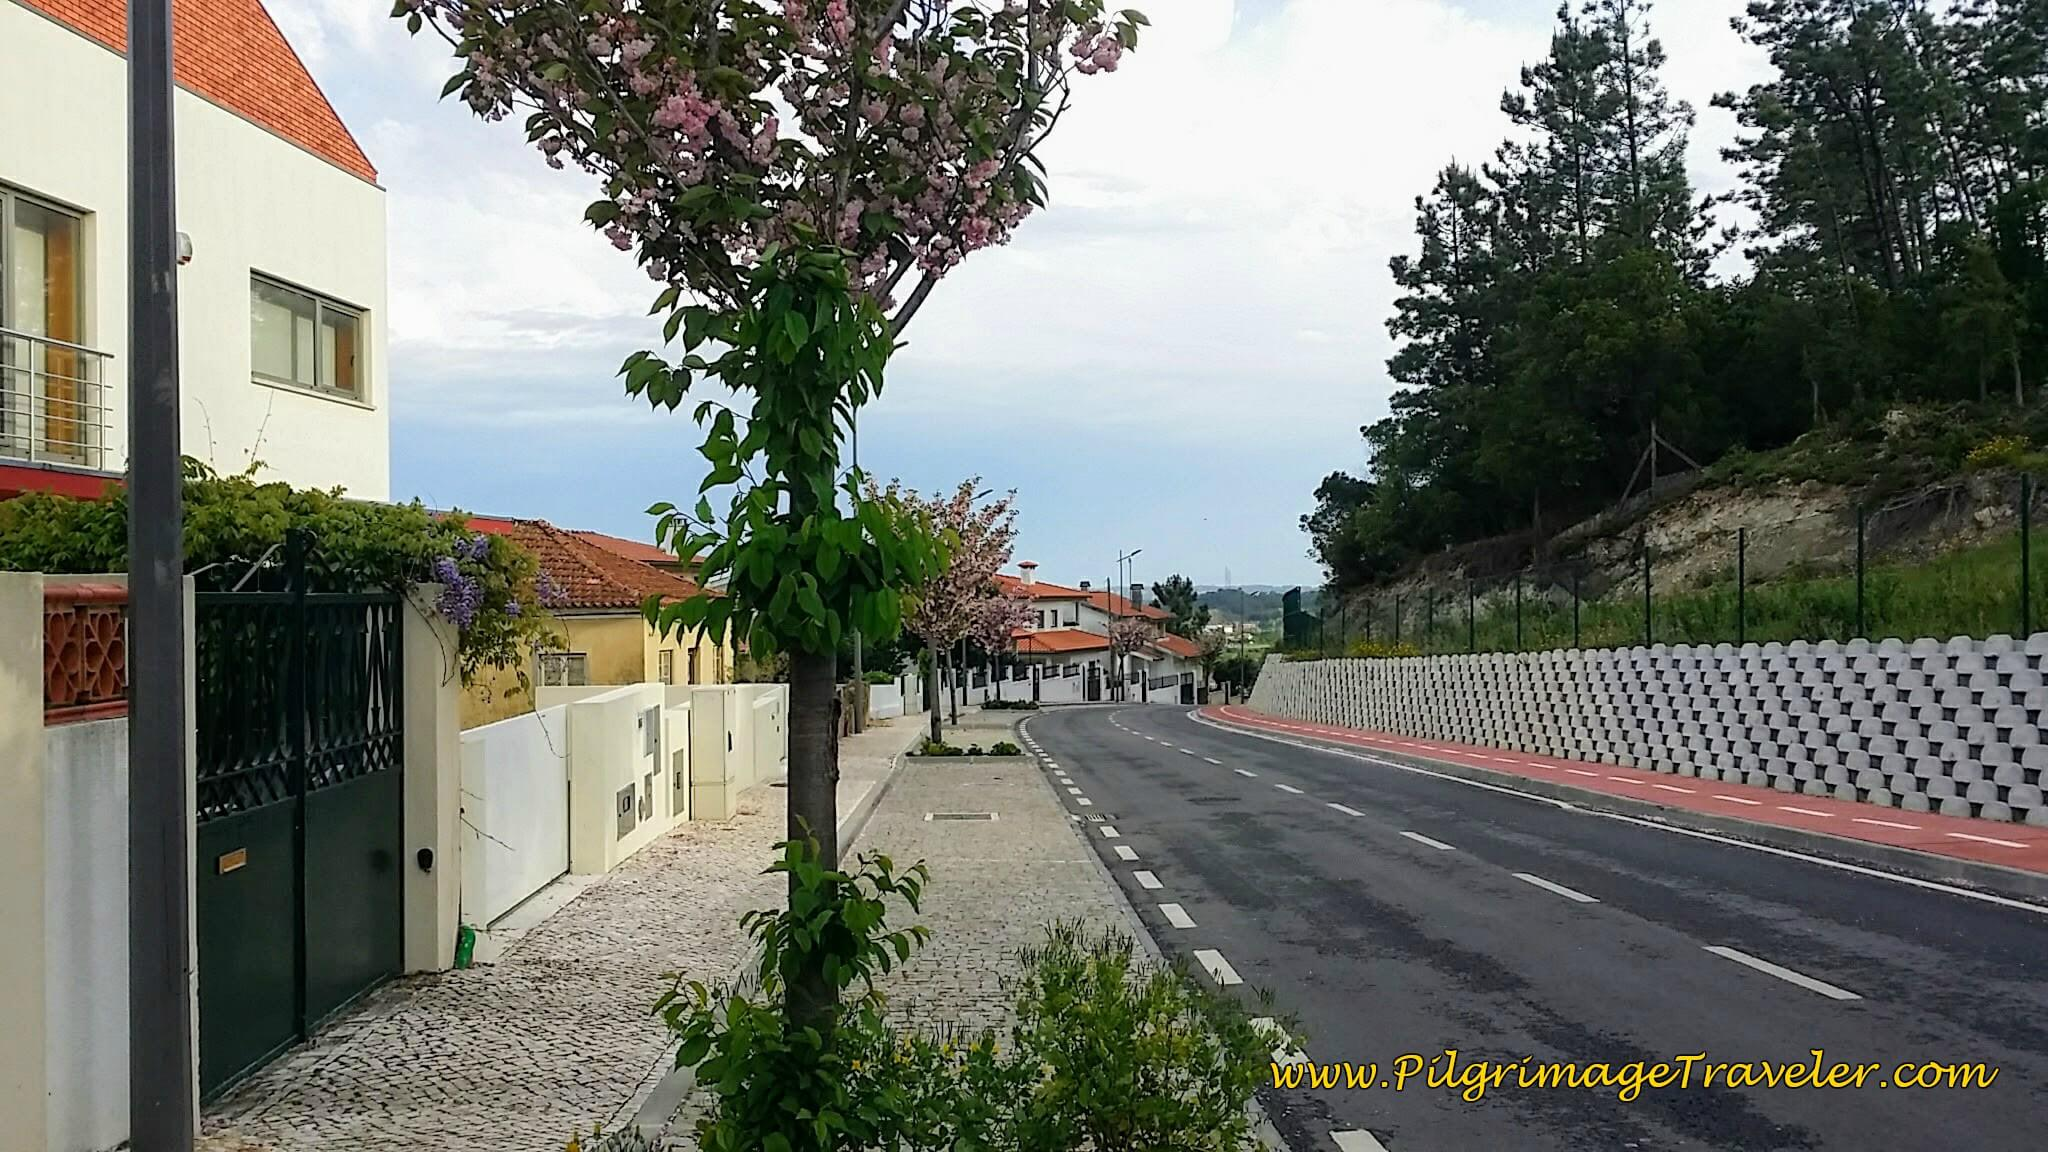 Spring Blooming Tree Lined Street on the Portuguese Camino